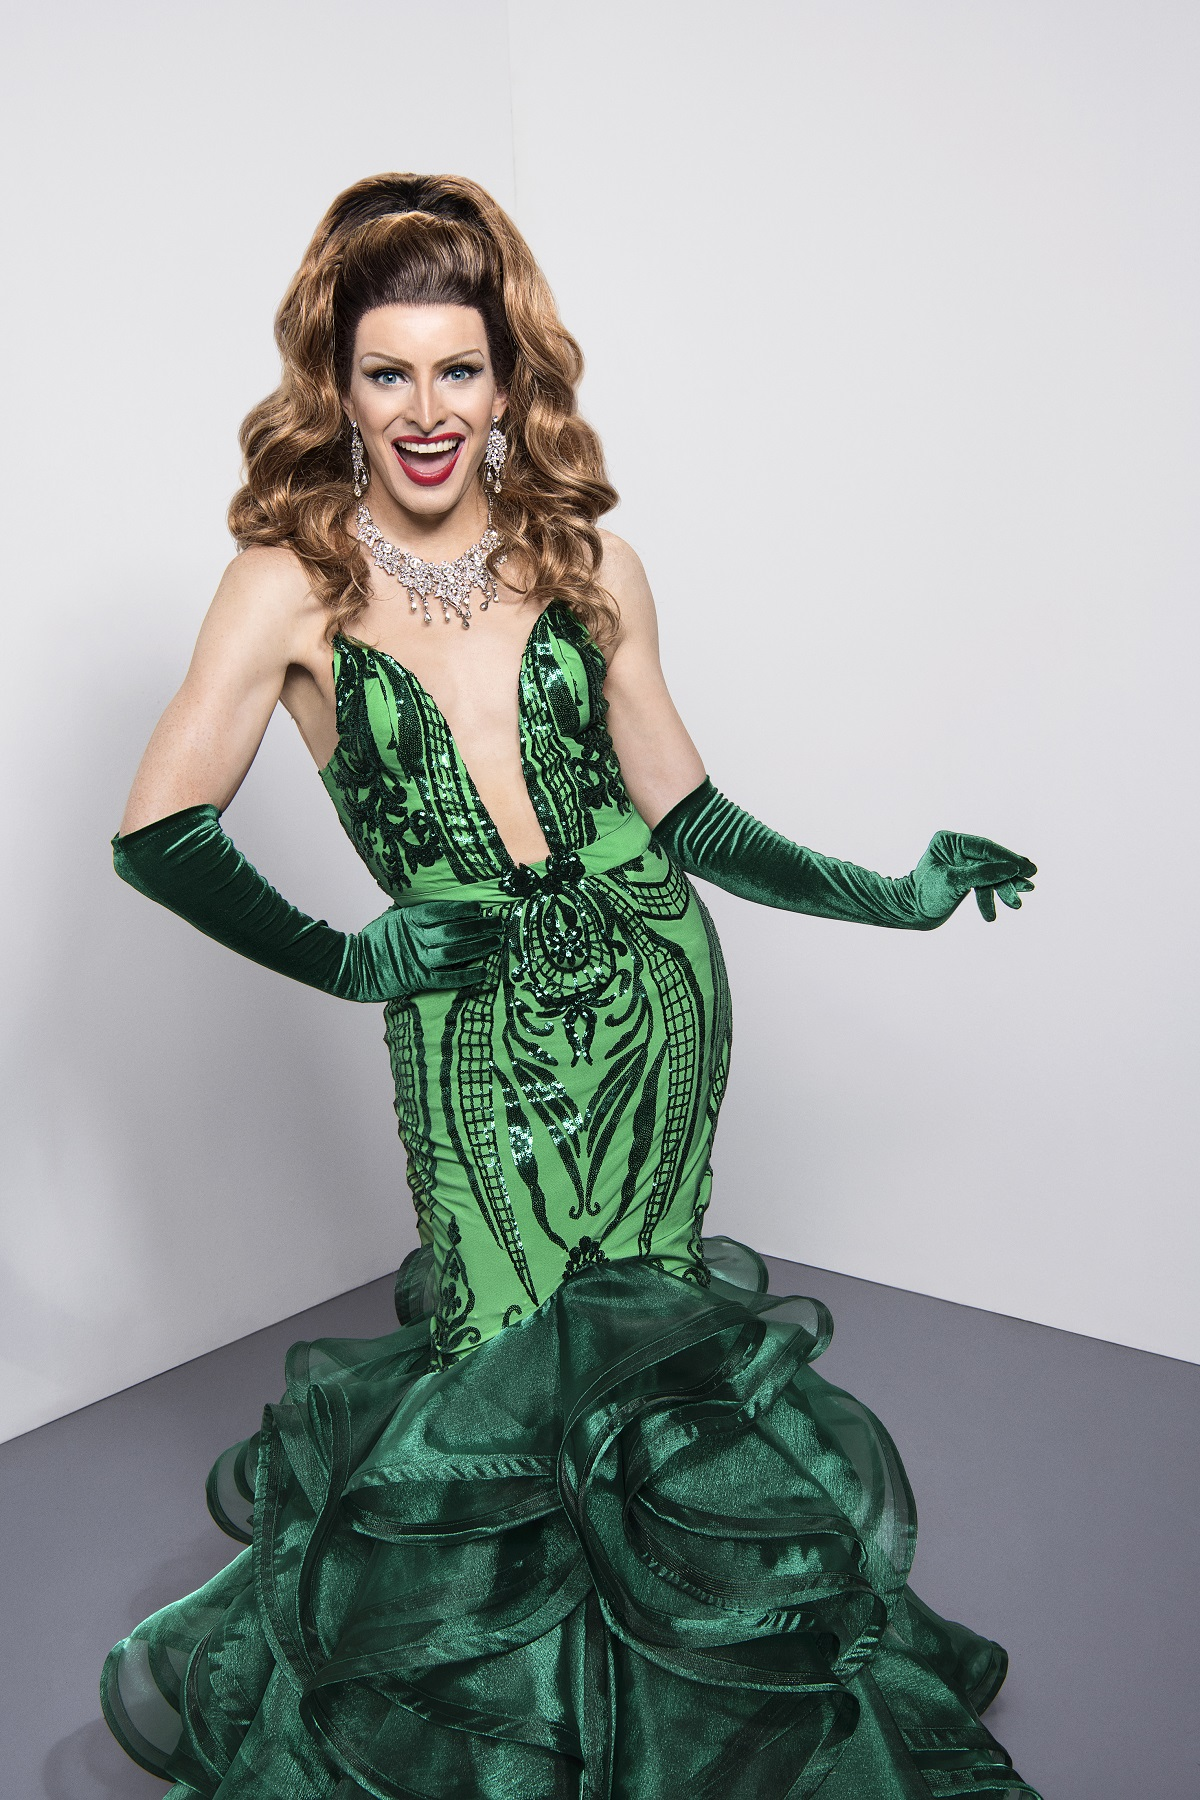 Veronica Green RuPaul's Drag Race UK Season 2